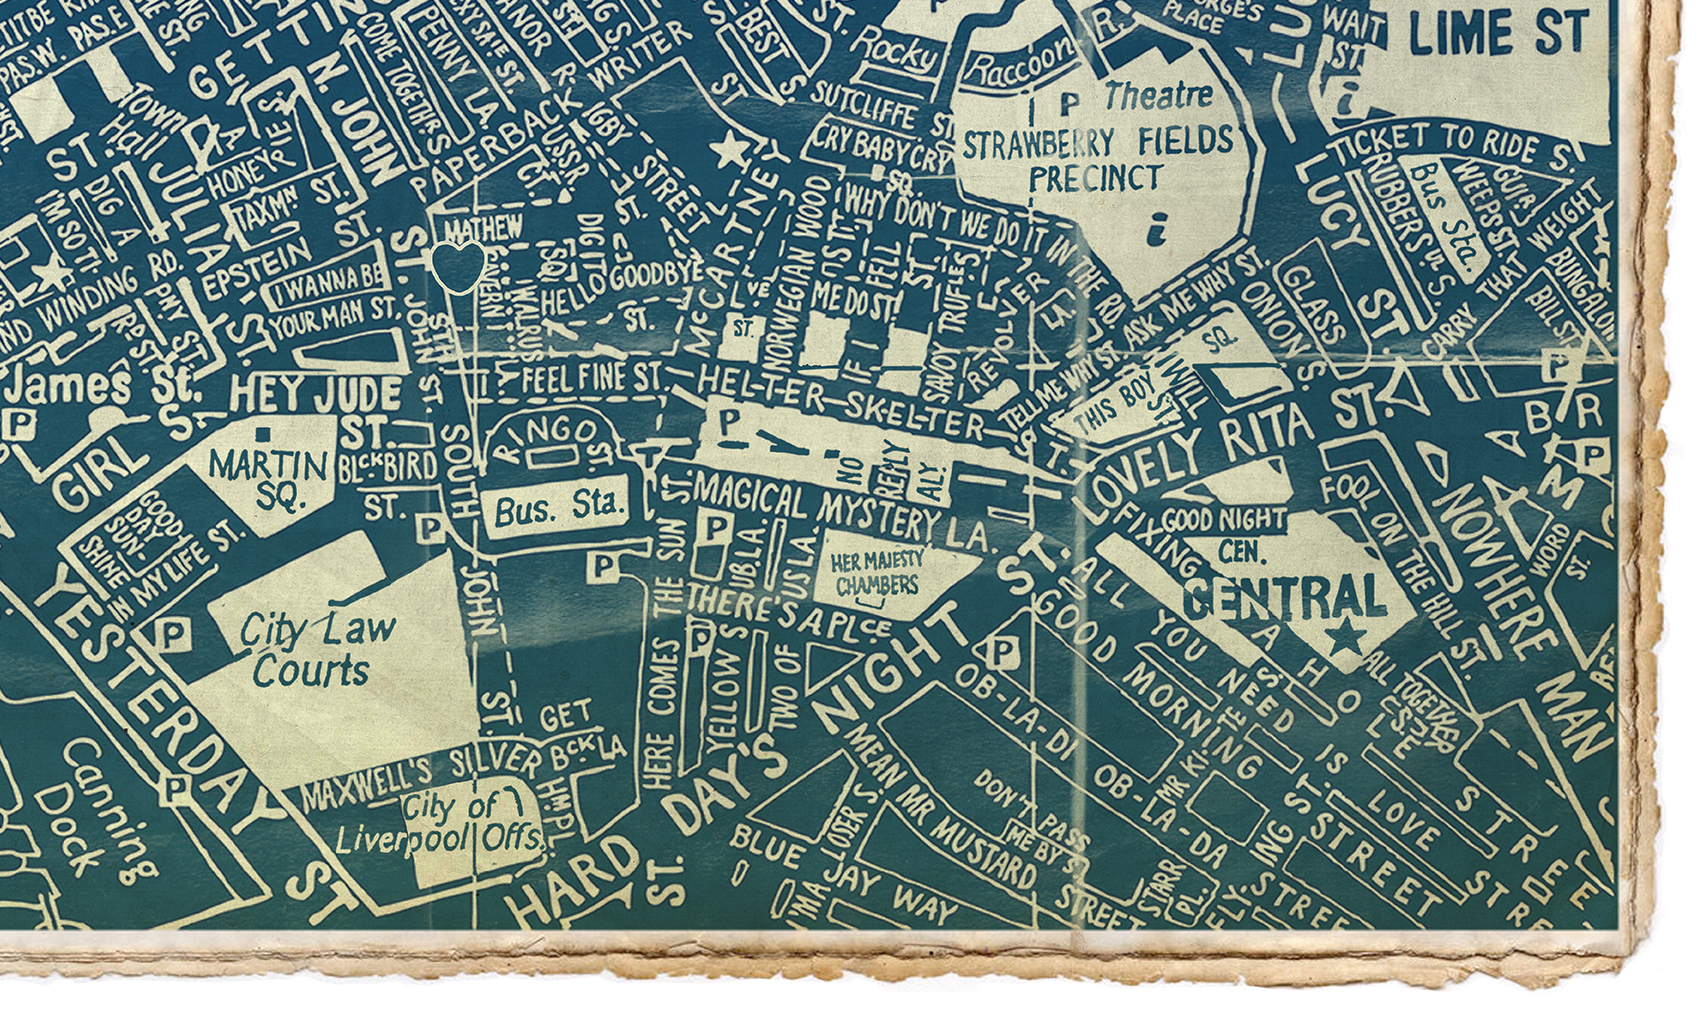 The beatles liverpool blueprint map malvernweather Choice Image